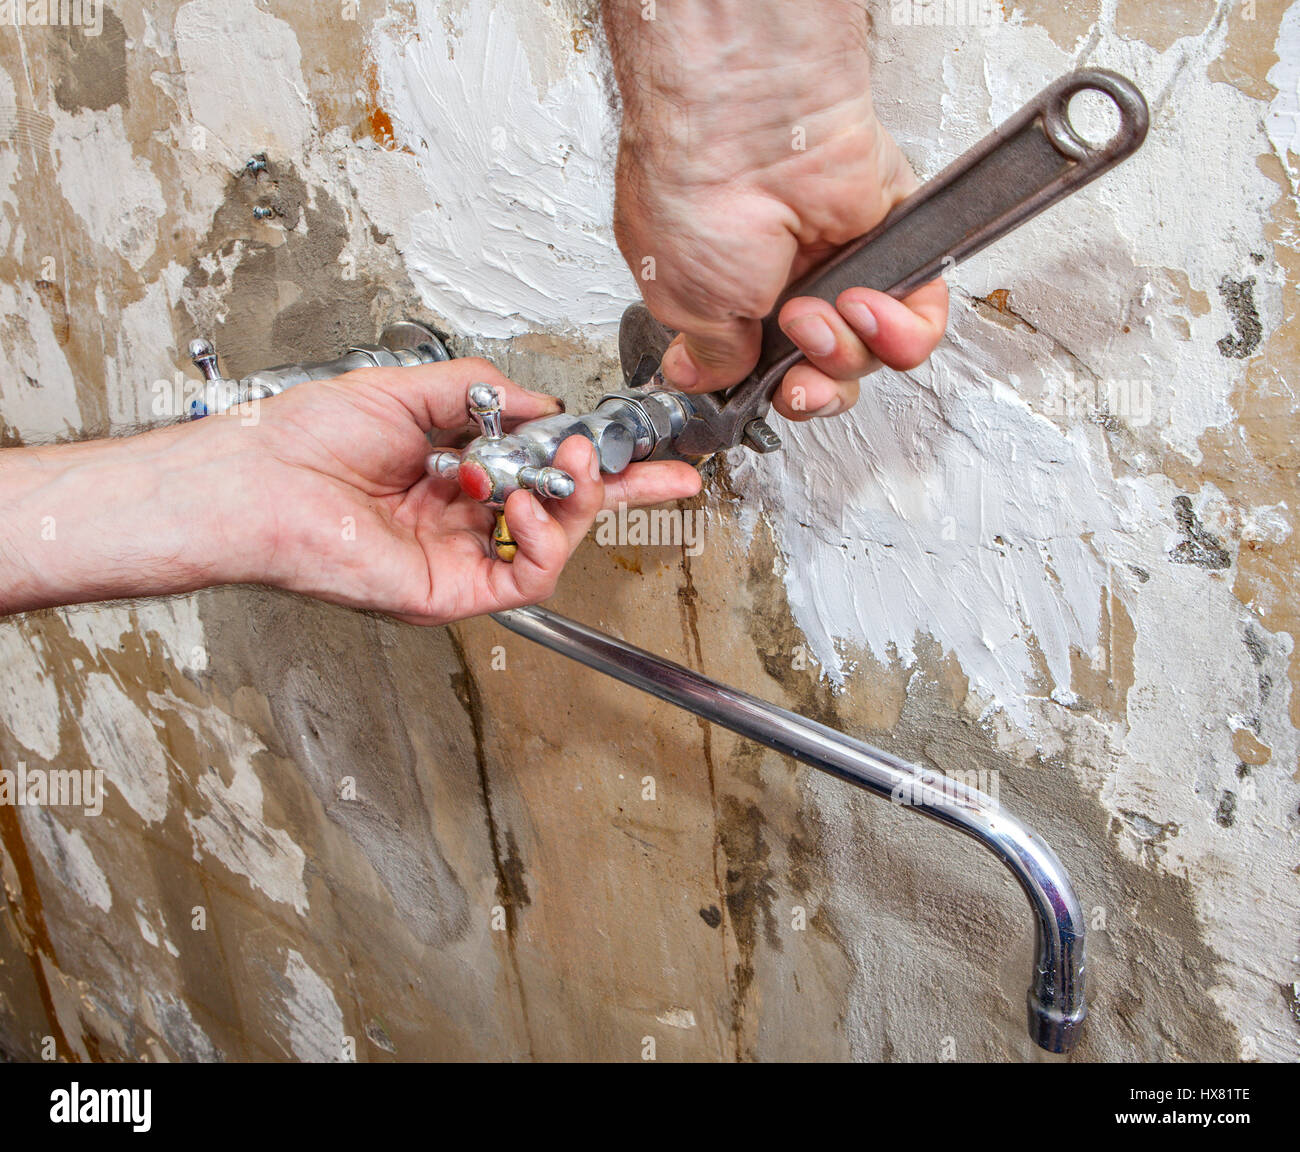 Dismantling of old faulty faucet, close-up hands of plumber with adjustable wrench. Stock Photo